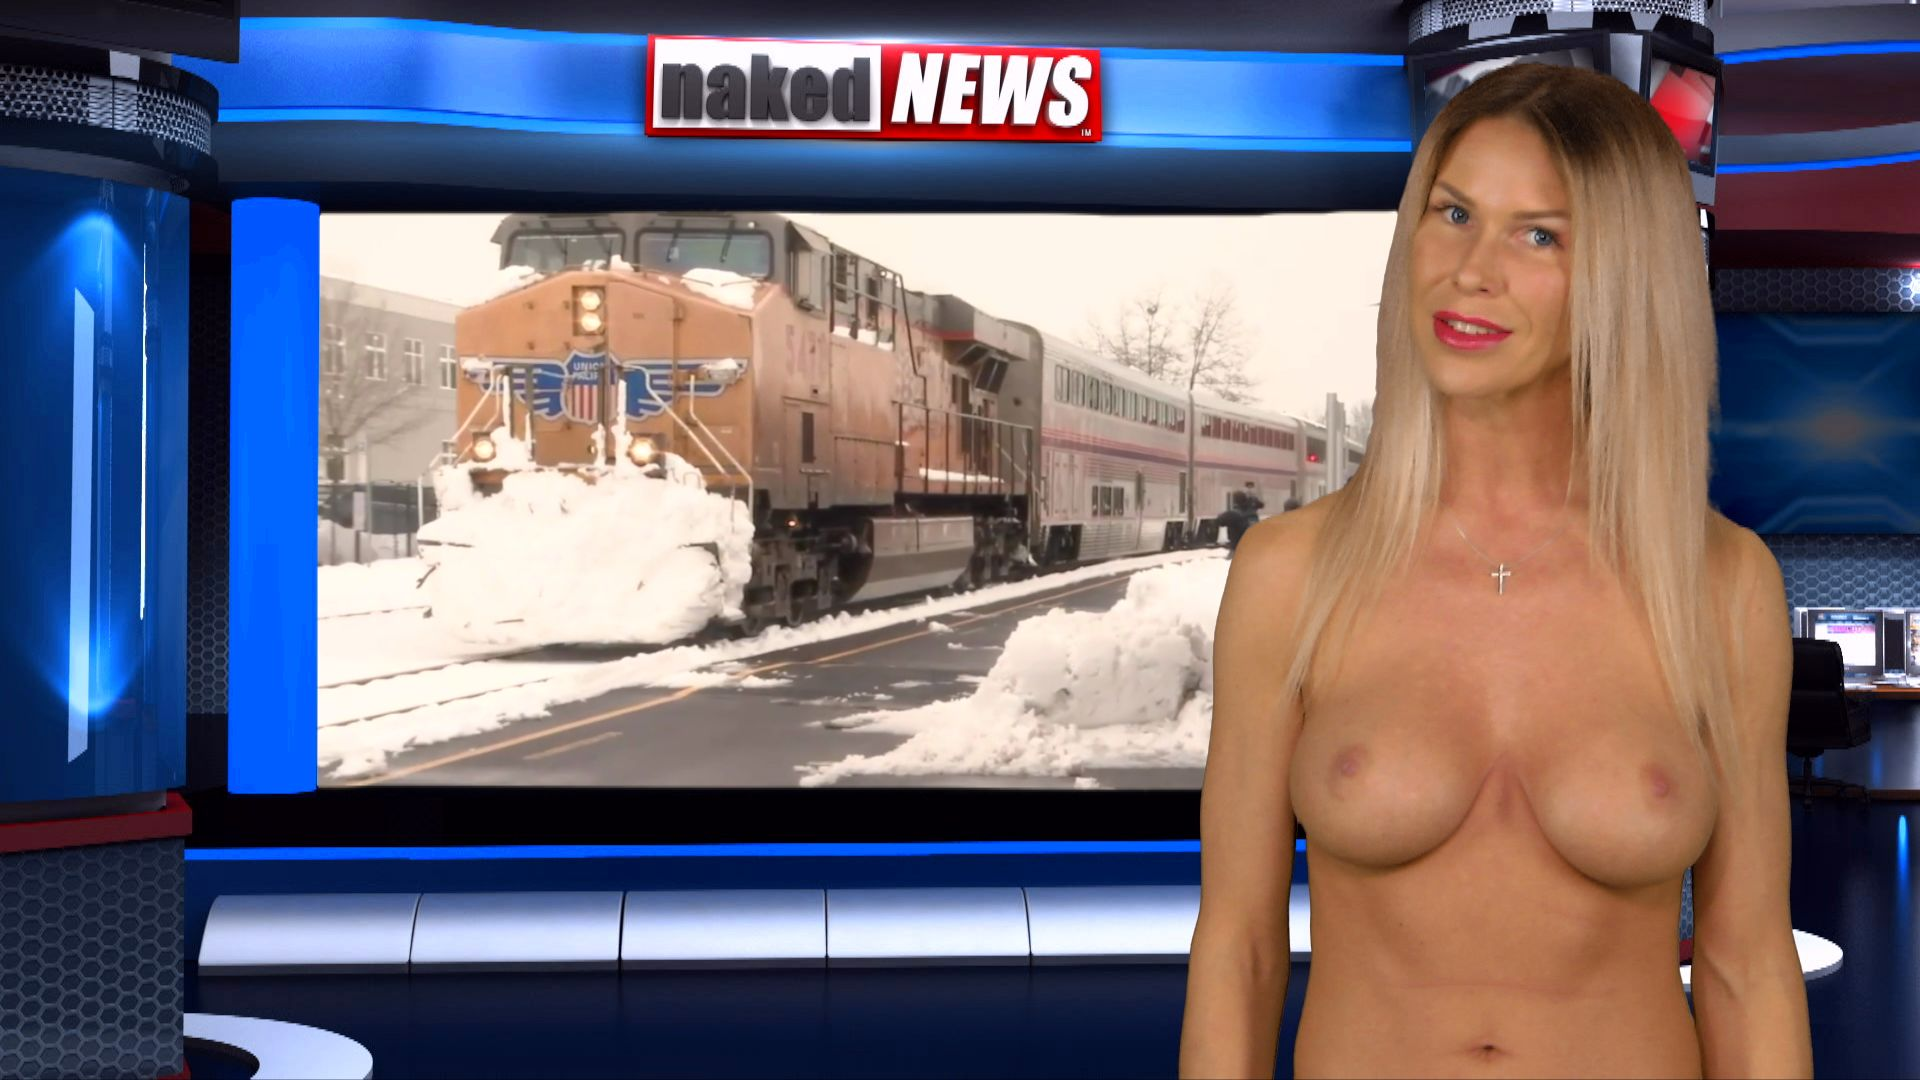 News Anchor bare naked